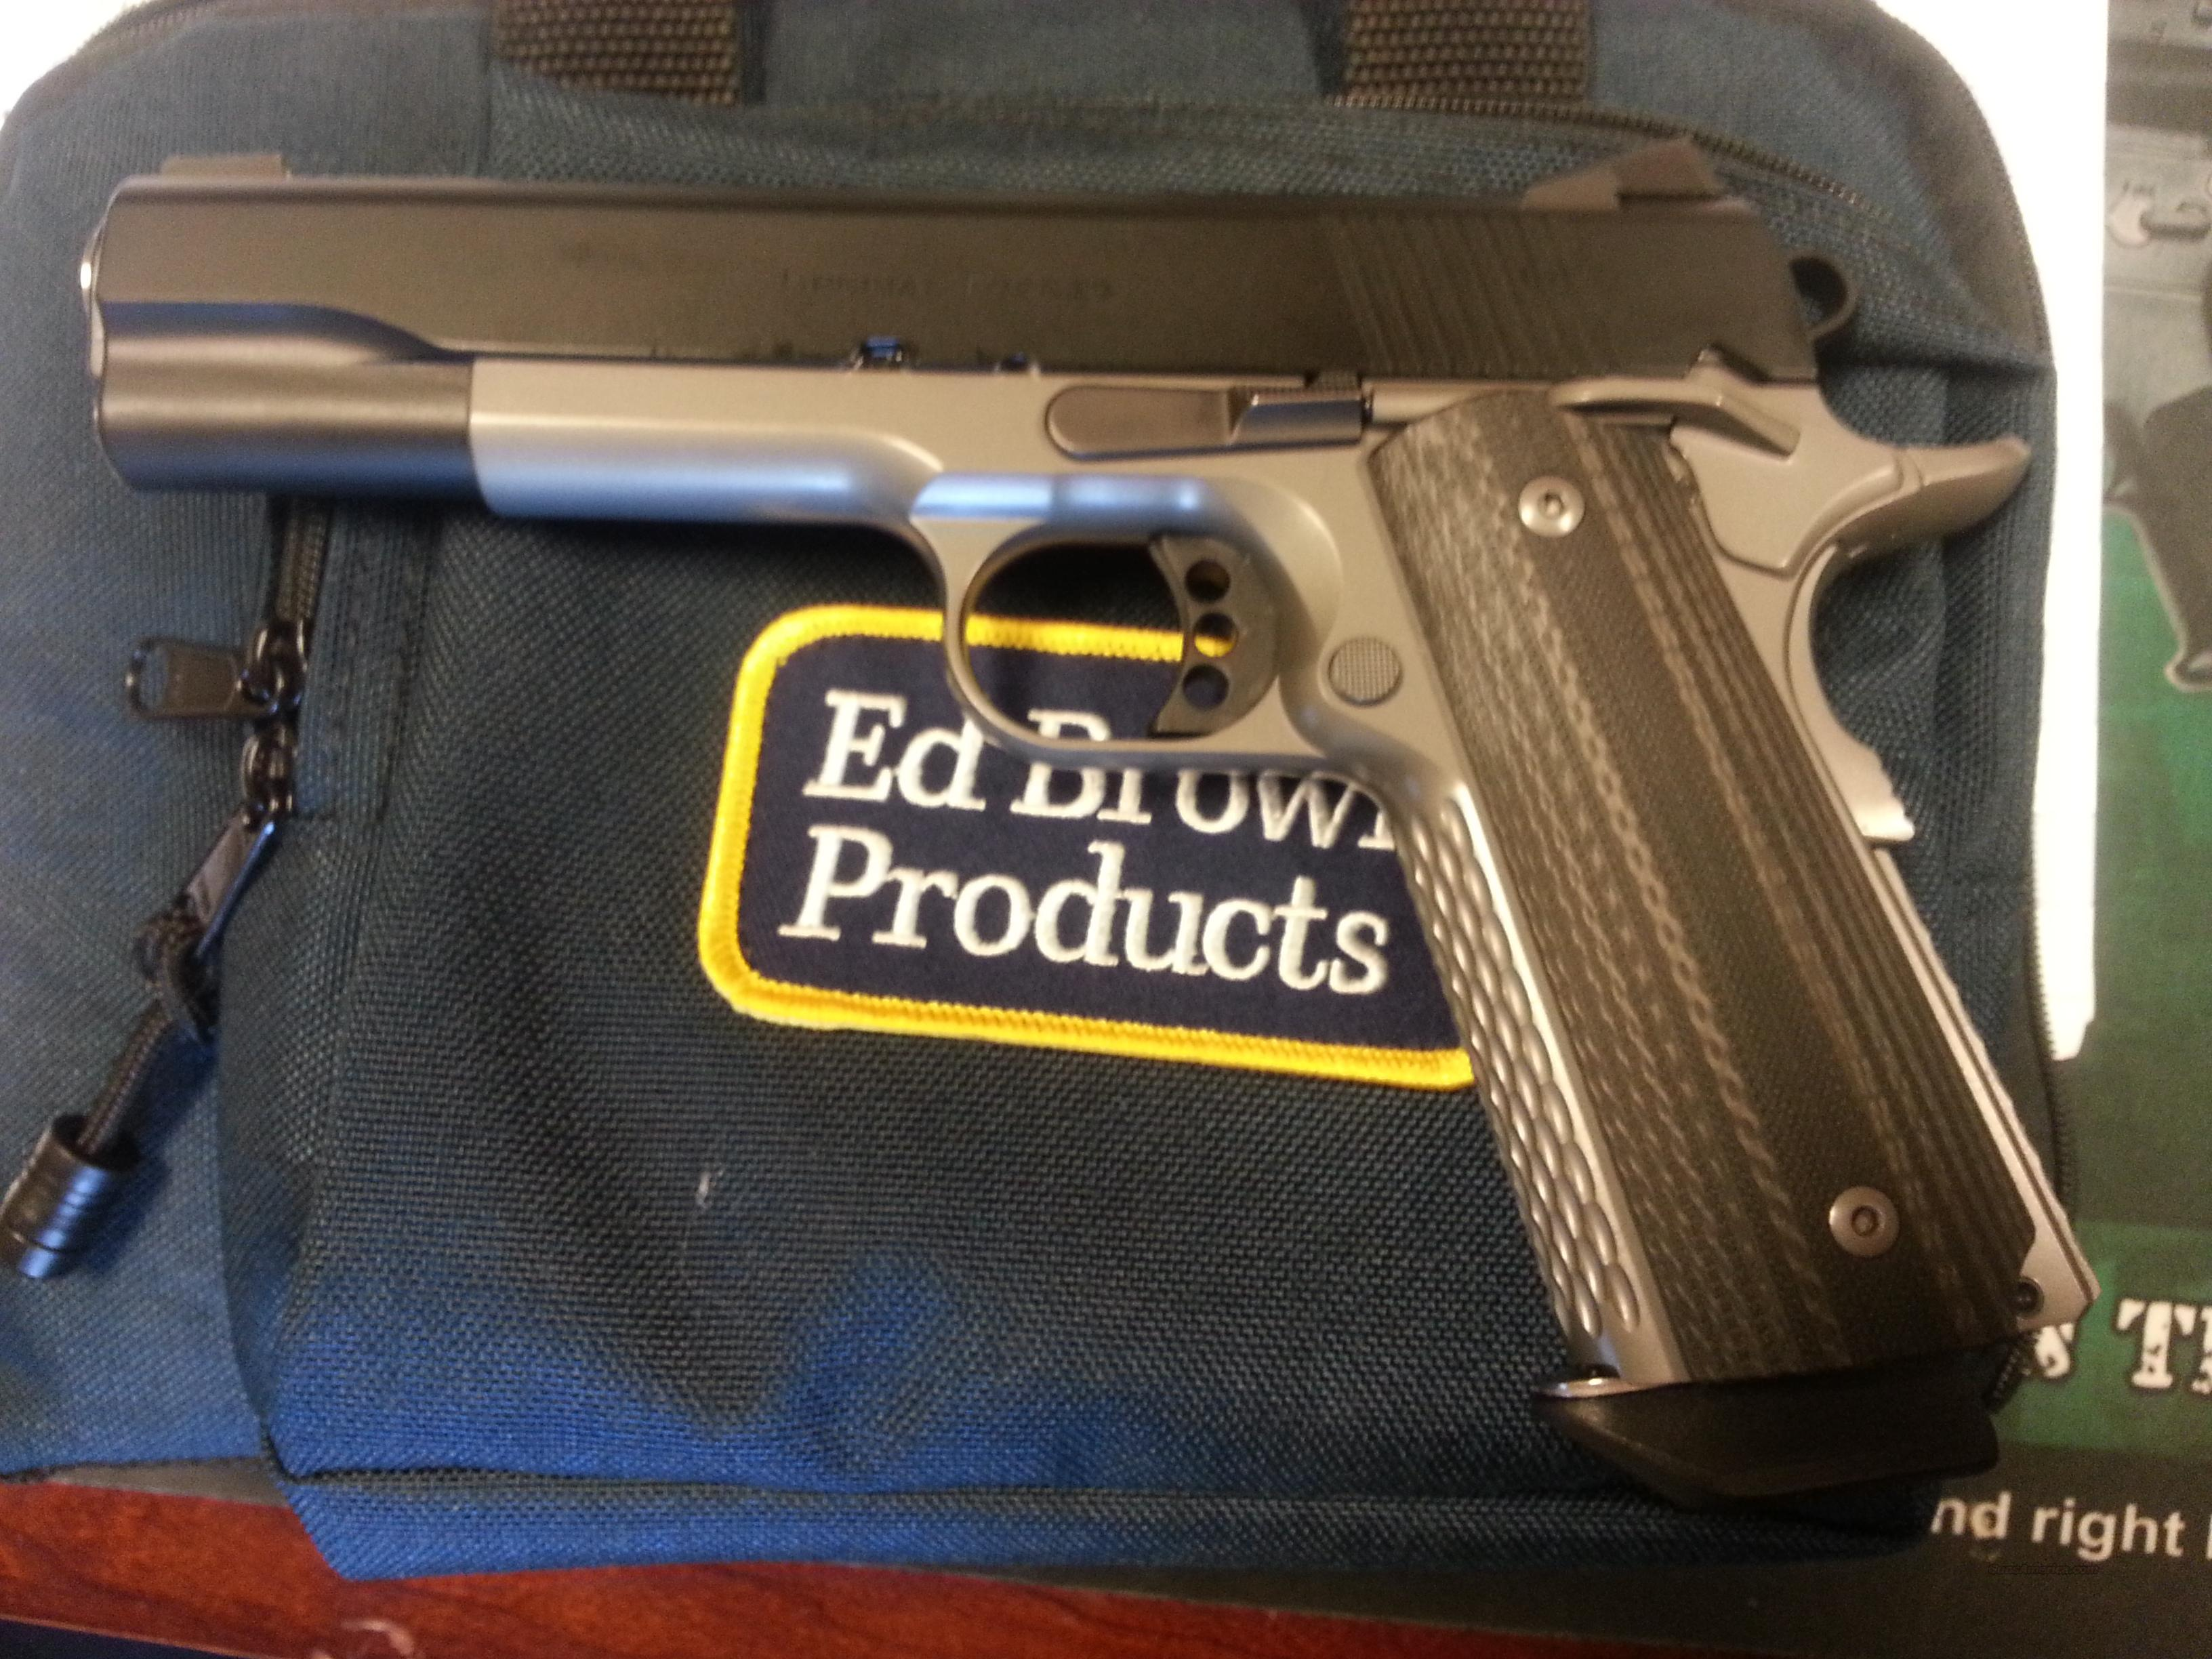 Ed Brown Special Forces Stealth Gray Used As New 45ACP  Guns > Pistols > Ed Brown Pistols